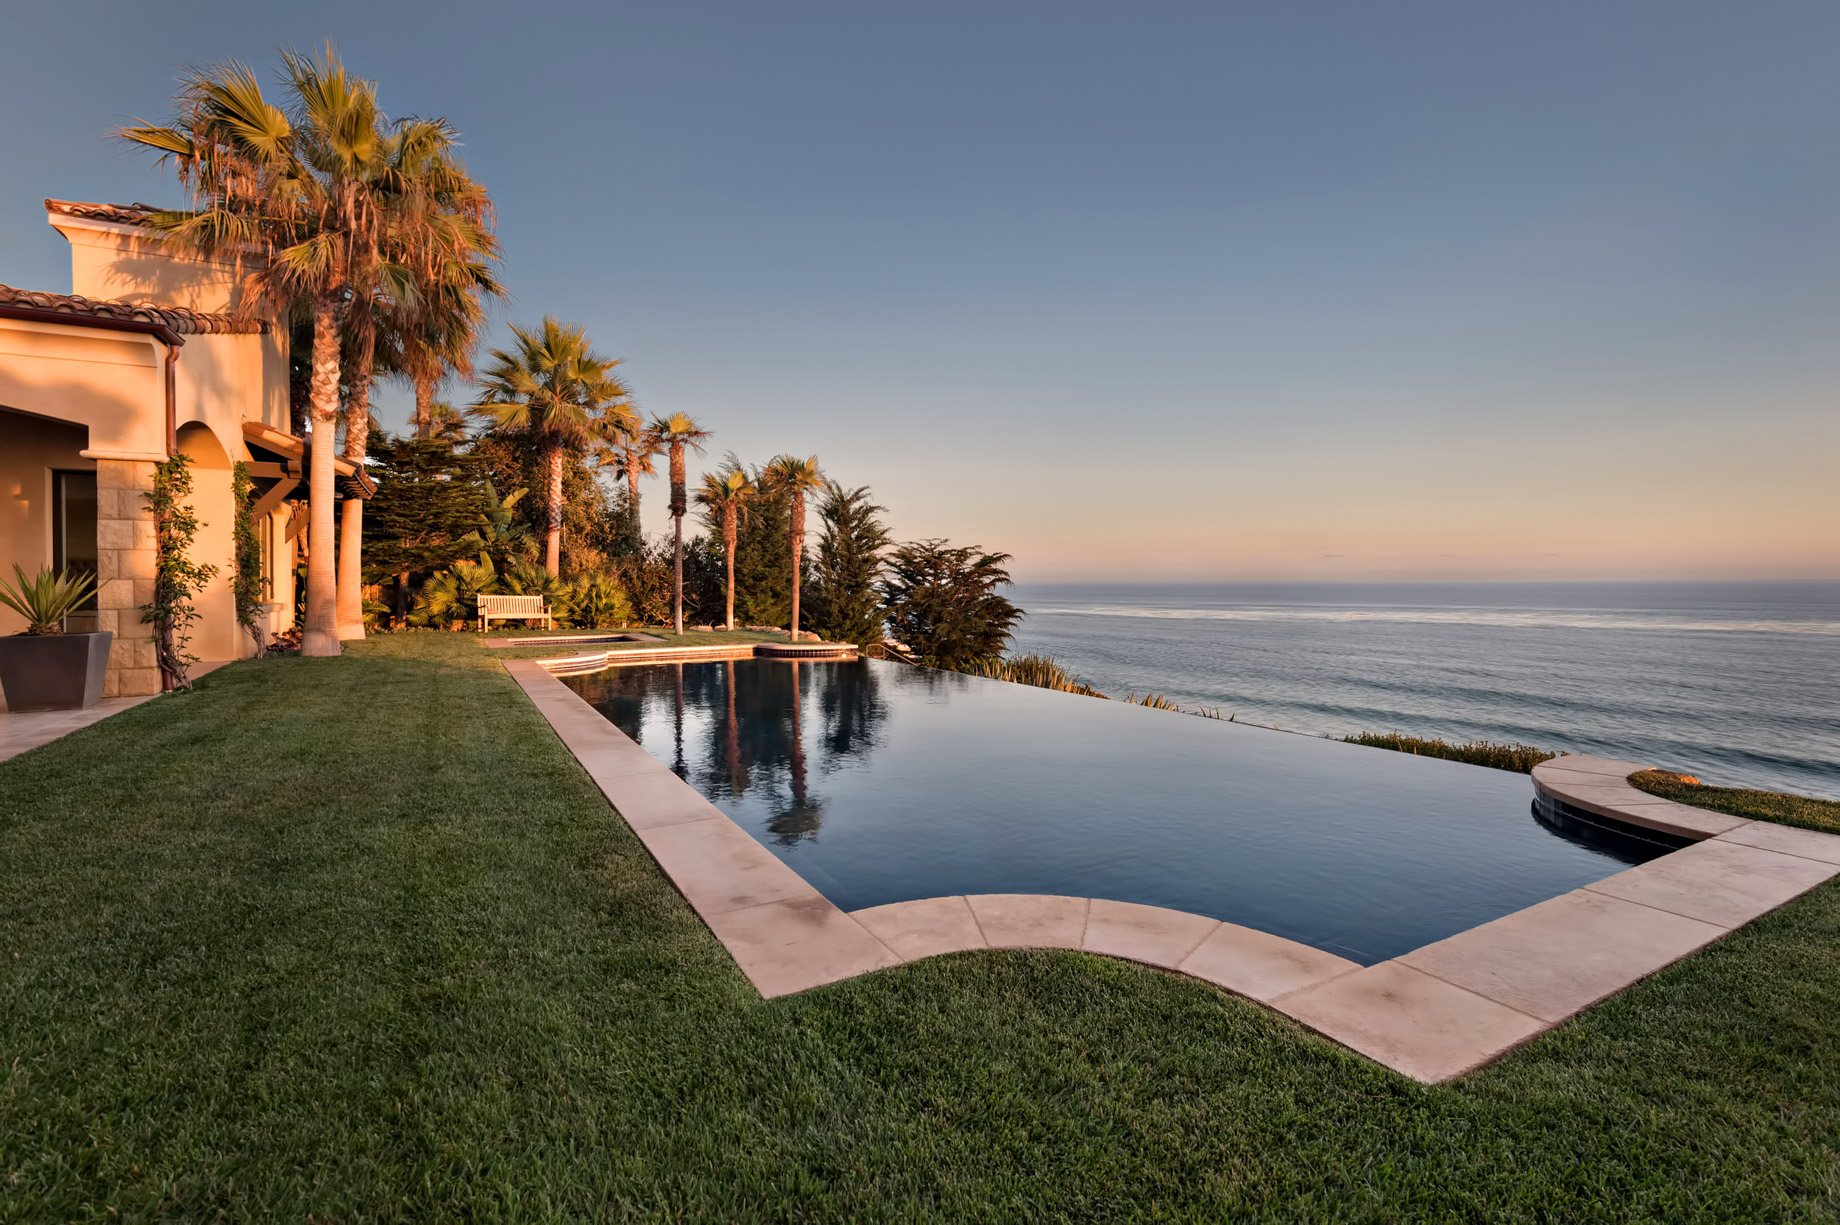 Marisol Spanish Estate - 11768 Ellice St, Malibu, CA, USA